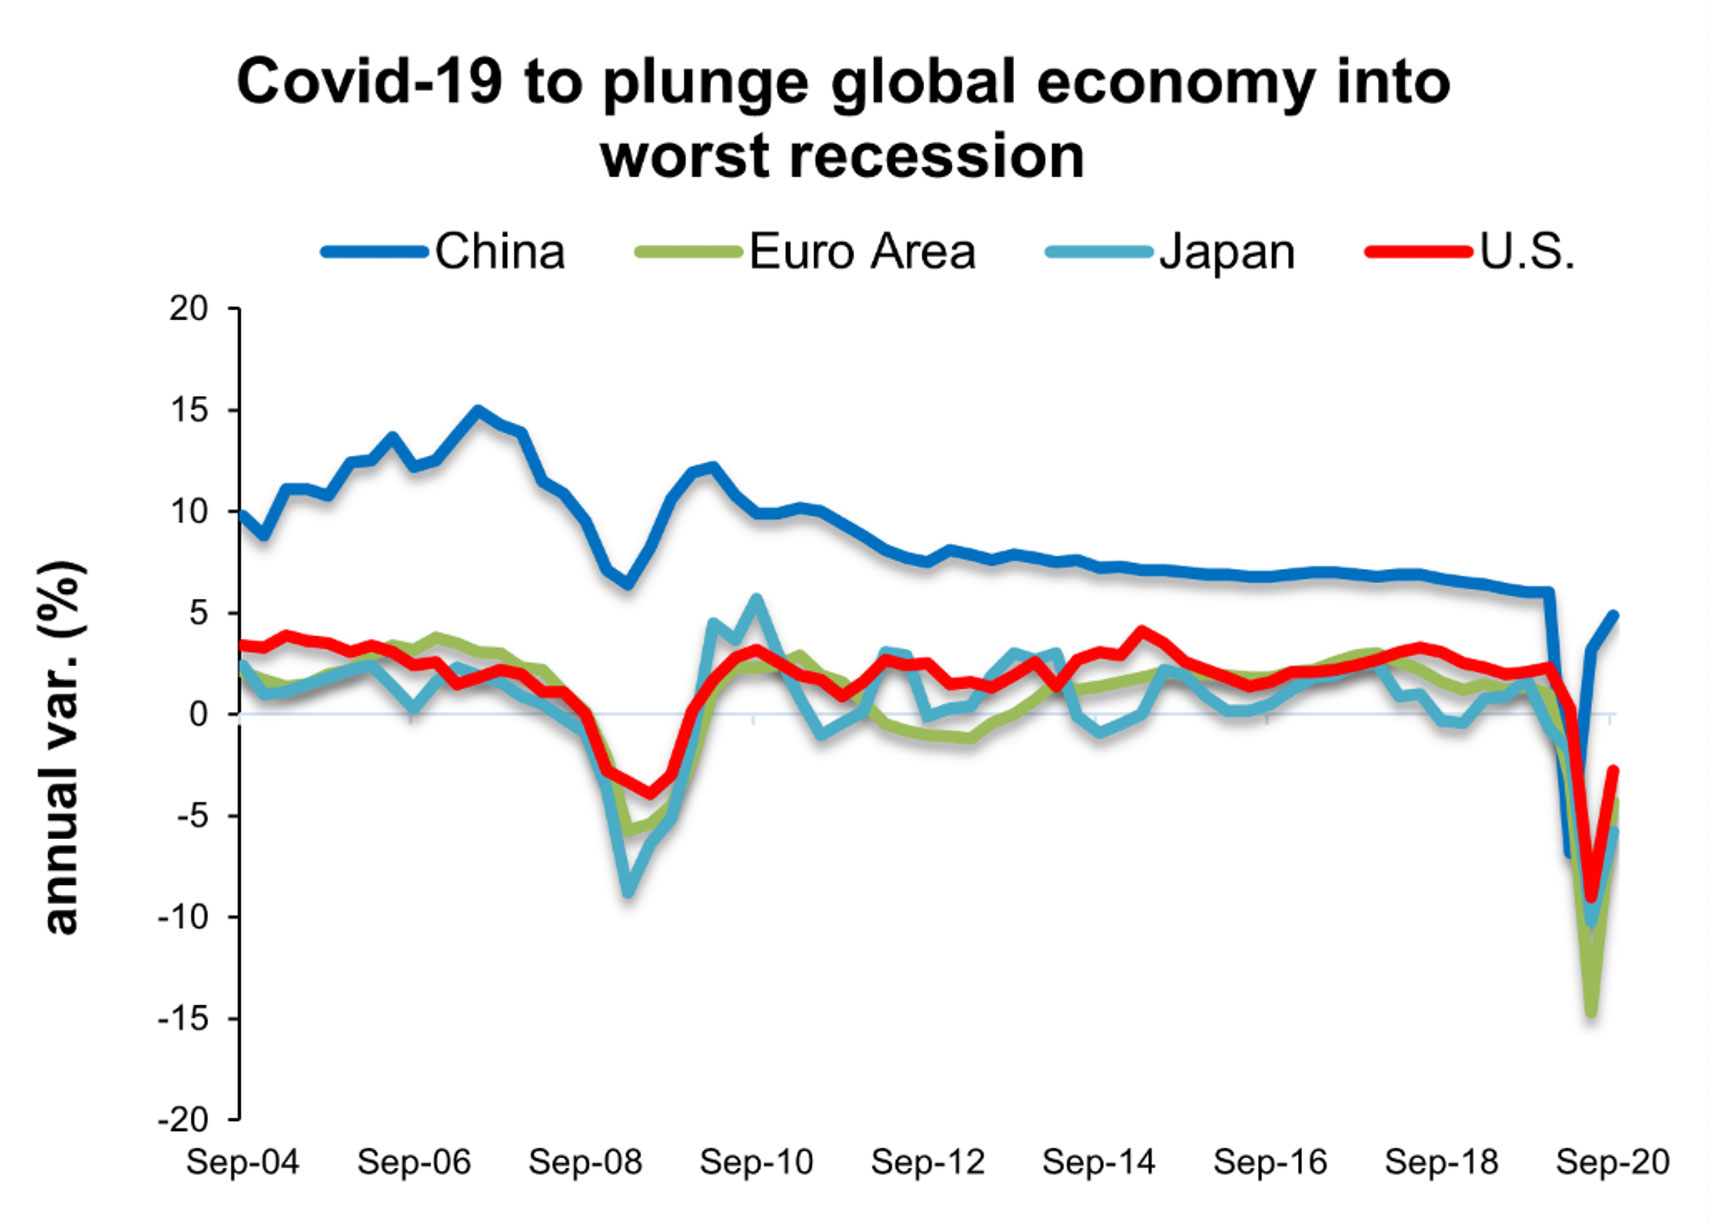 Covid-19 to plunge global economy worst recession